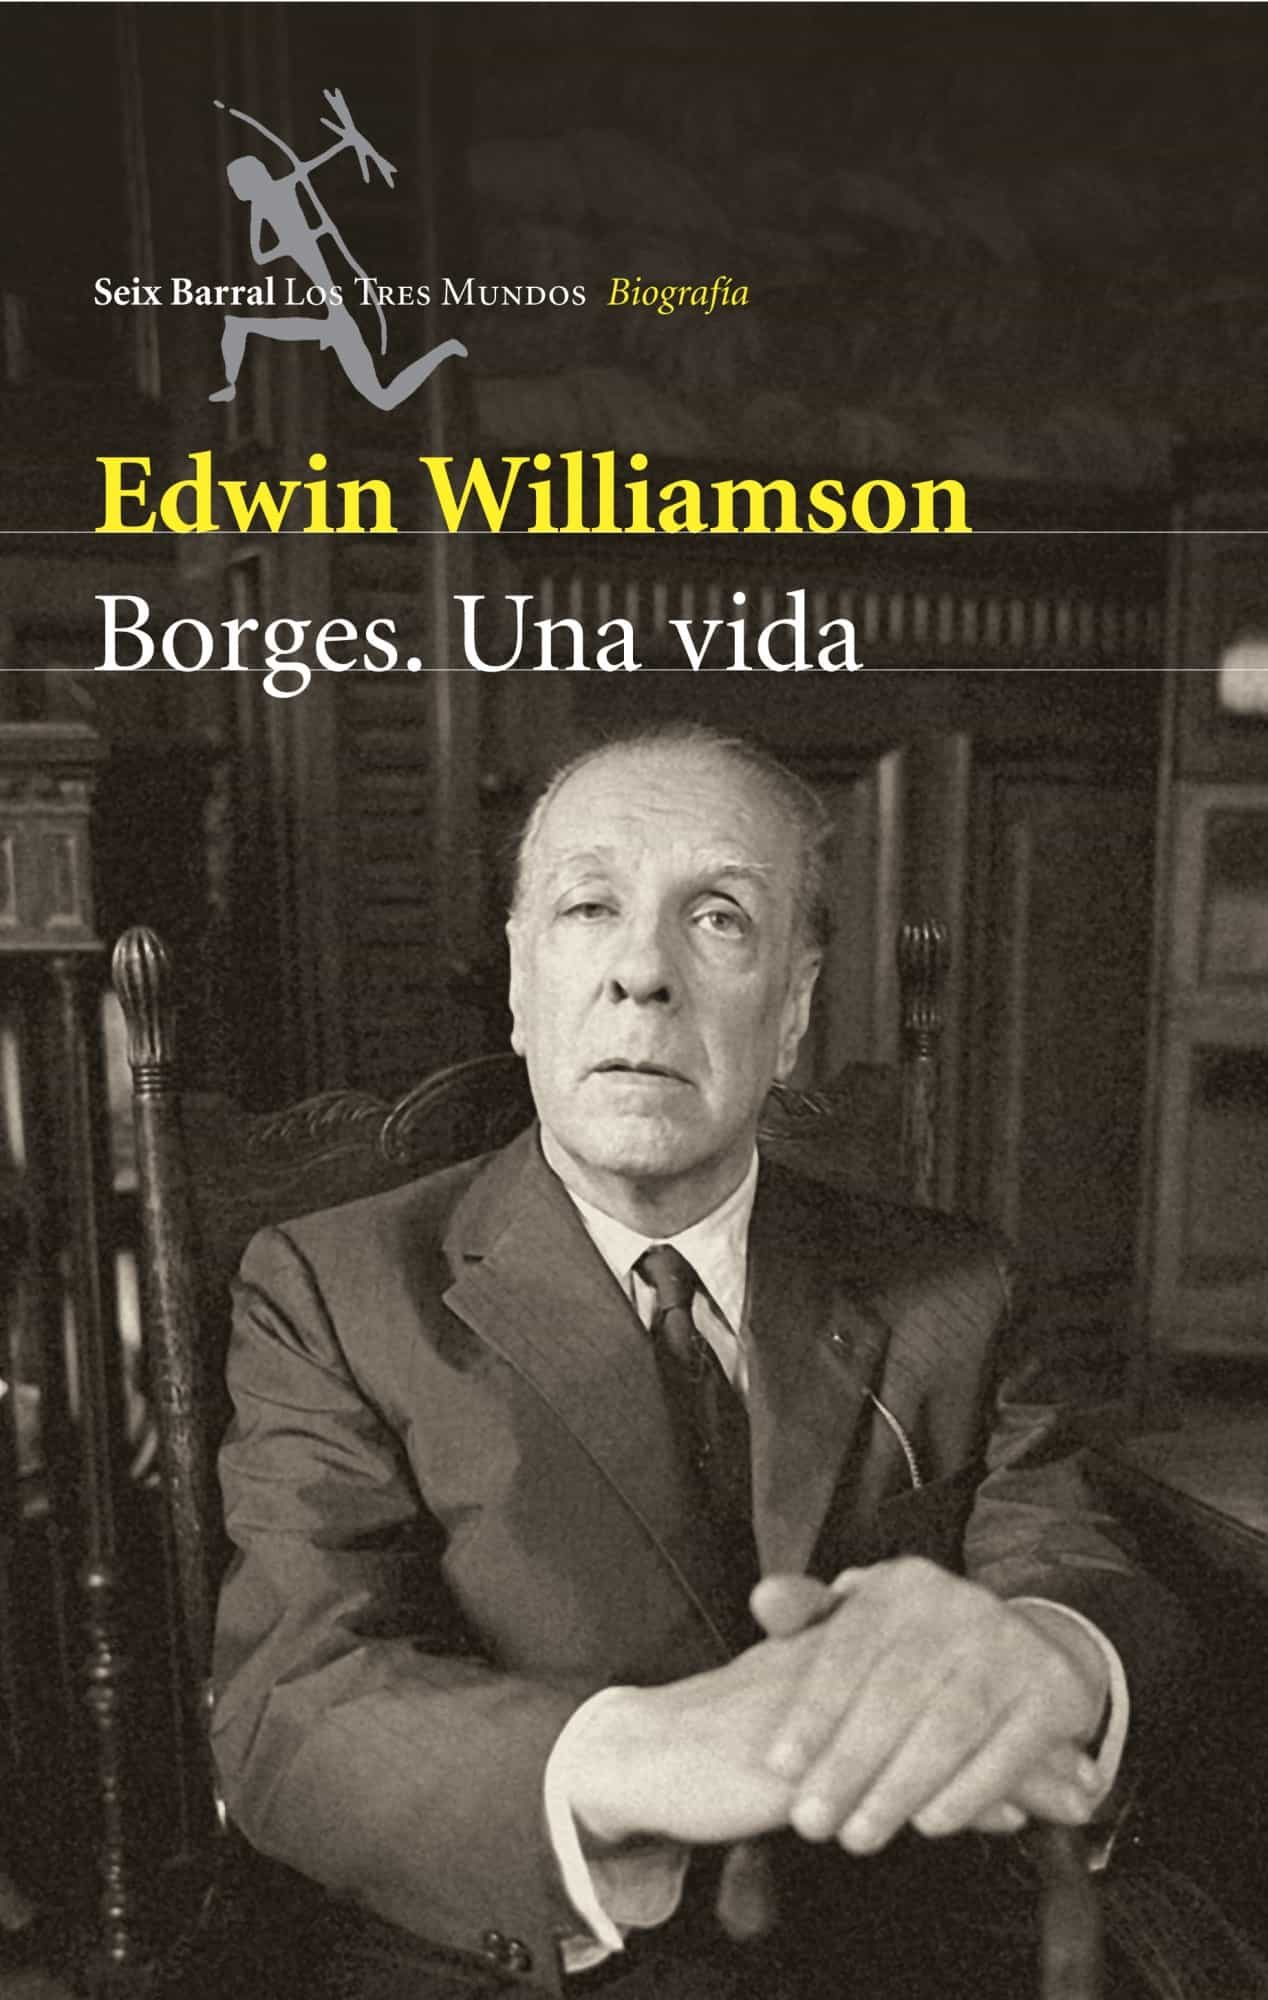 borges: una vida-edwin williamson-9788432209017